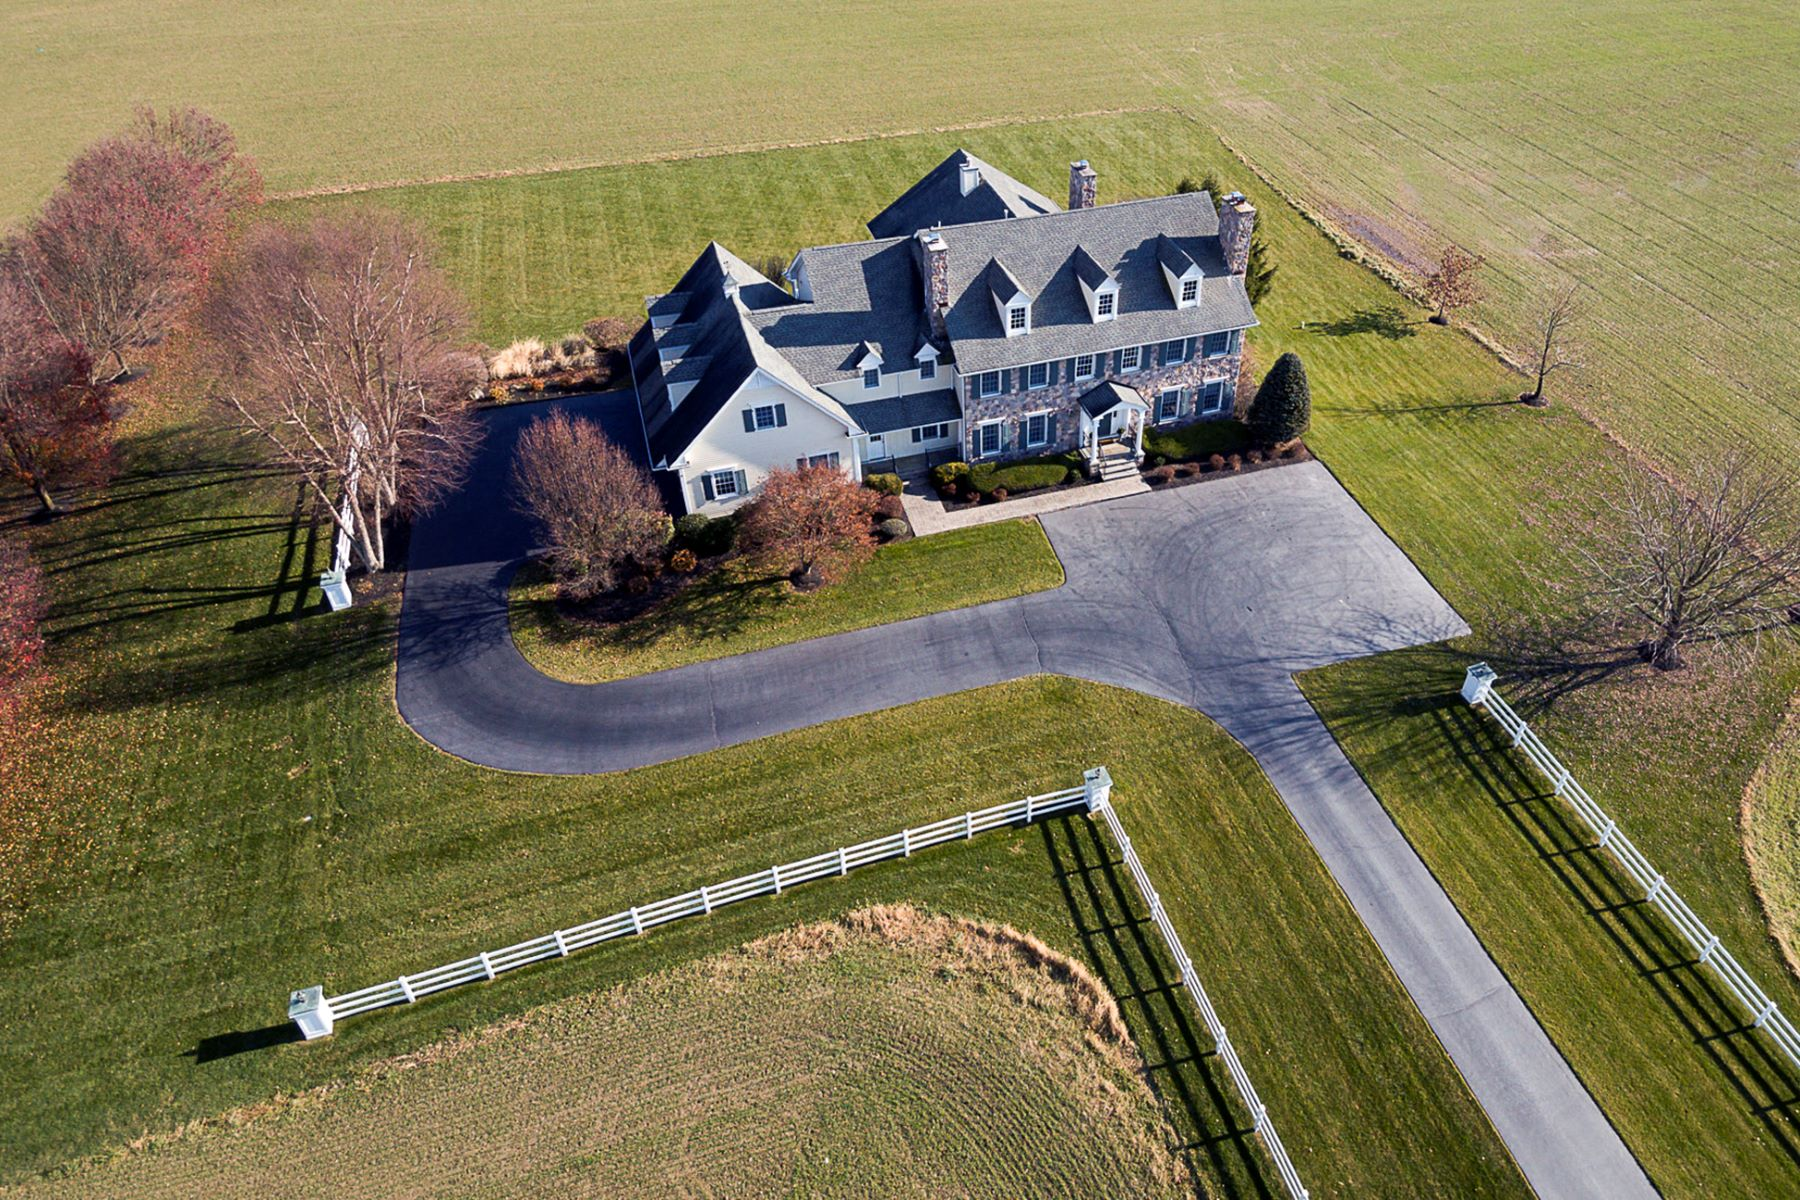 Property para Venda às All The Pleasures Of Refined Country Living 81 Petty Road, Cranbury, Nova Jersey 08512 Estados Unidos